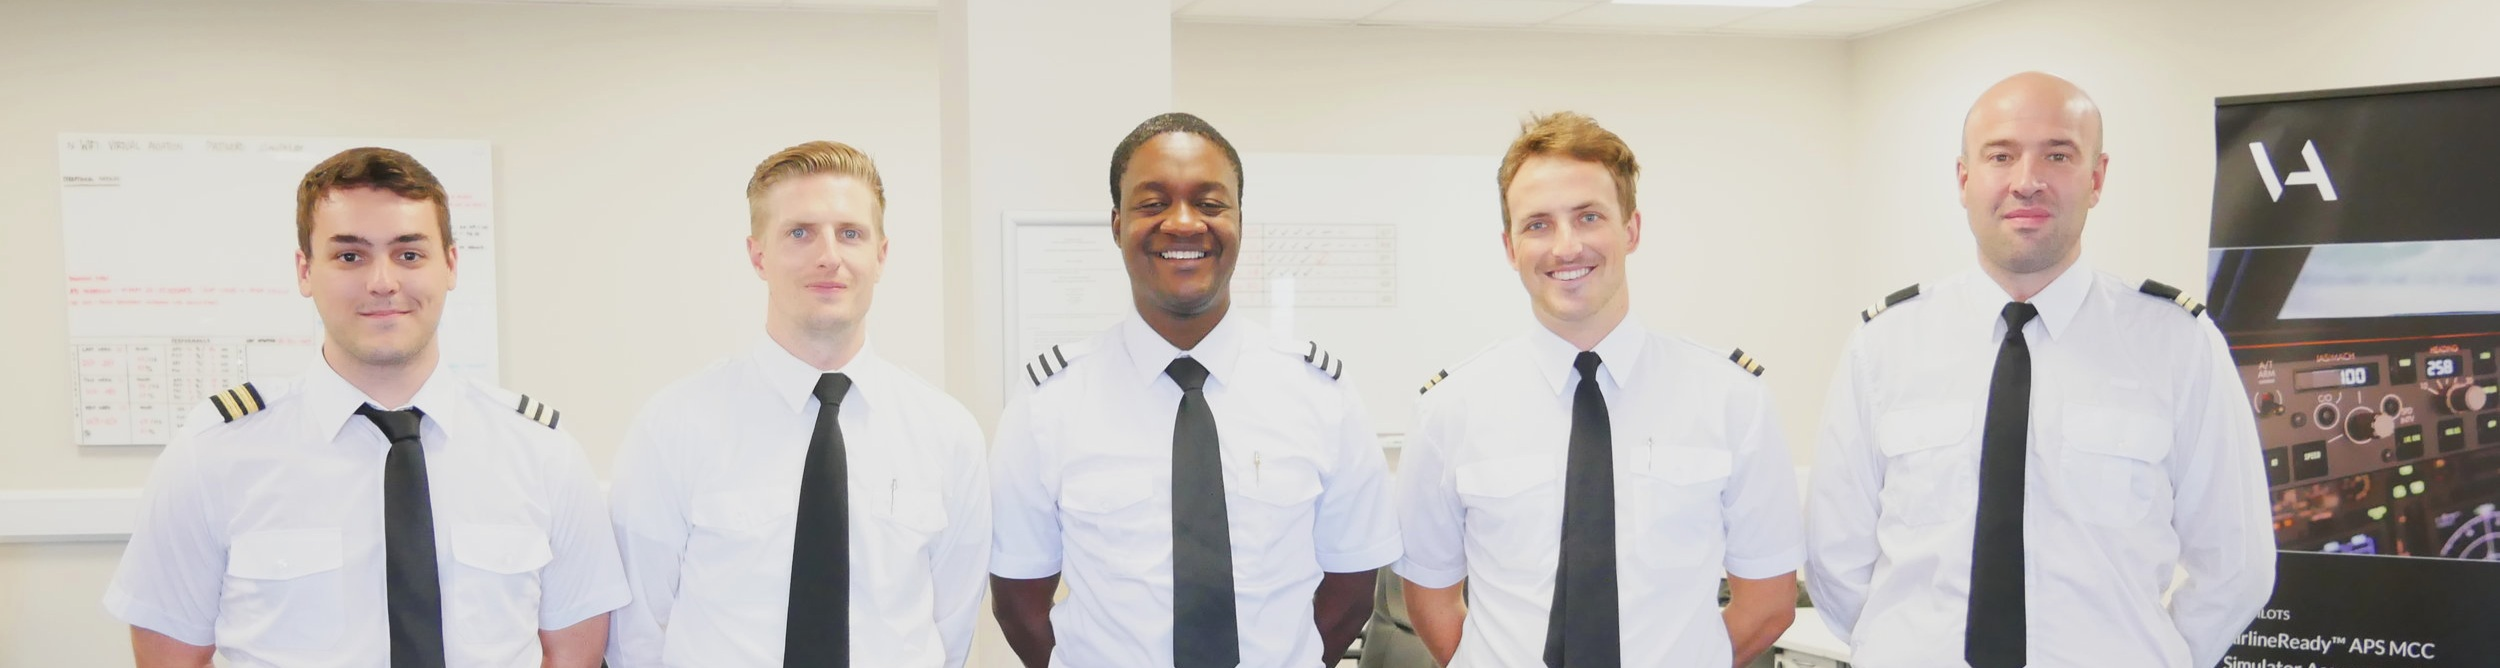 All of APS MCC class 1814 went on to employment soon after graduating. From left to right - Jesus (Iberia Airways), Raymond (Ryanair), Kudzi (Ryanair), Alex (Ryanair) and Kepa (TAROM).